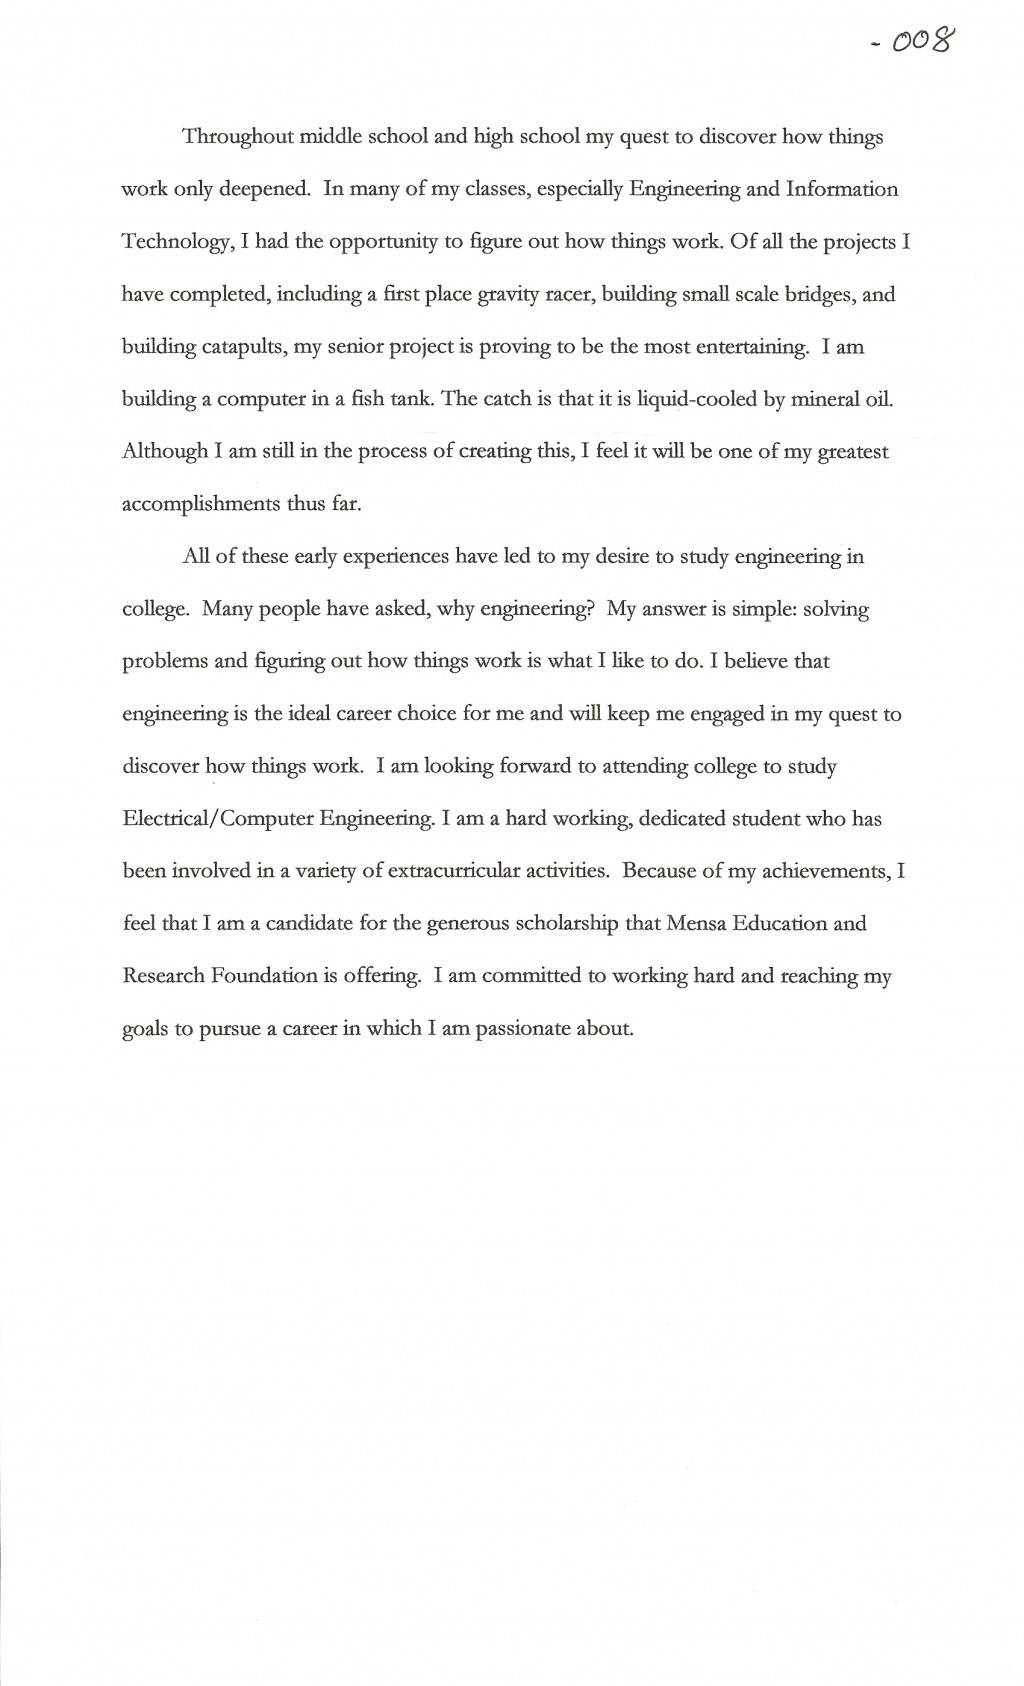 004 Essay On Career Example Joshua Cate Breathtaking Goals And Aspirations Sample Choosing A Path Large